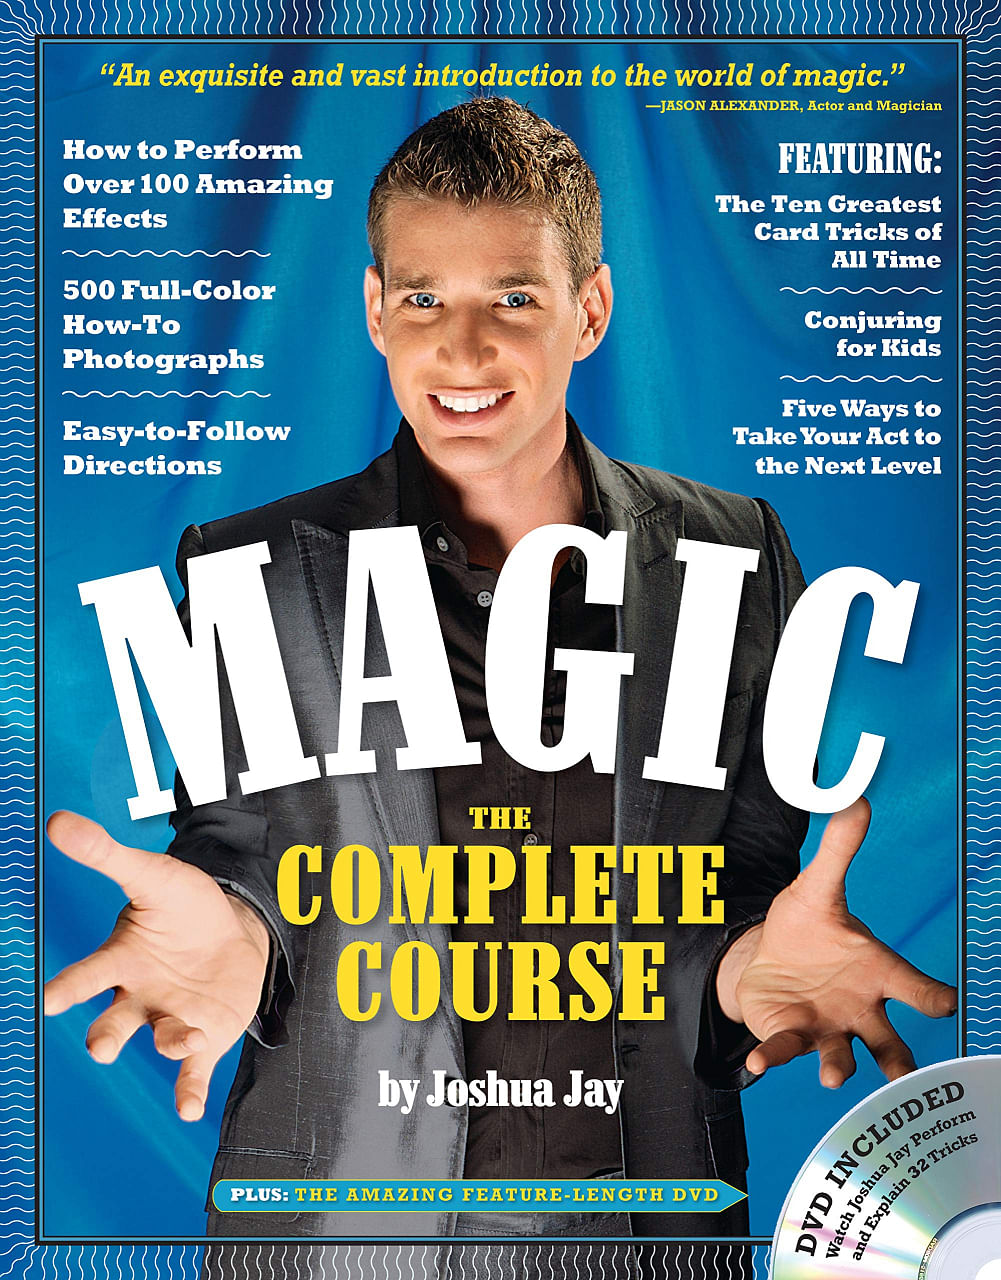 Magician joshua jay performs a magic trick on the cover of his magic book for beginners